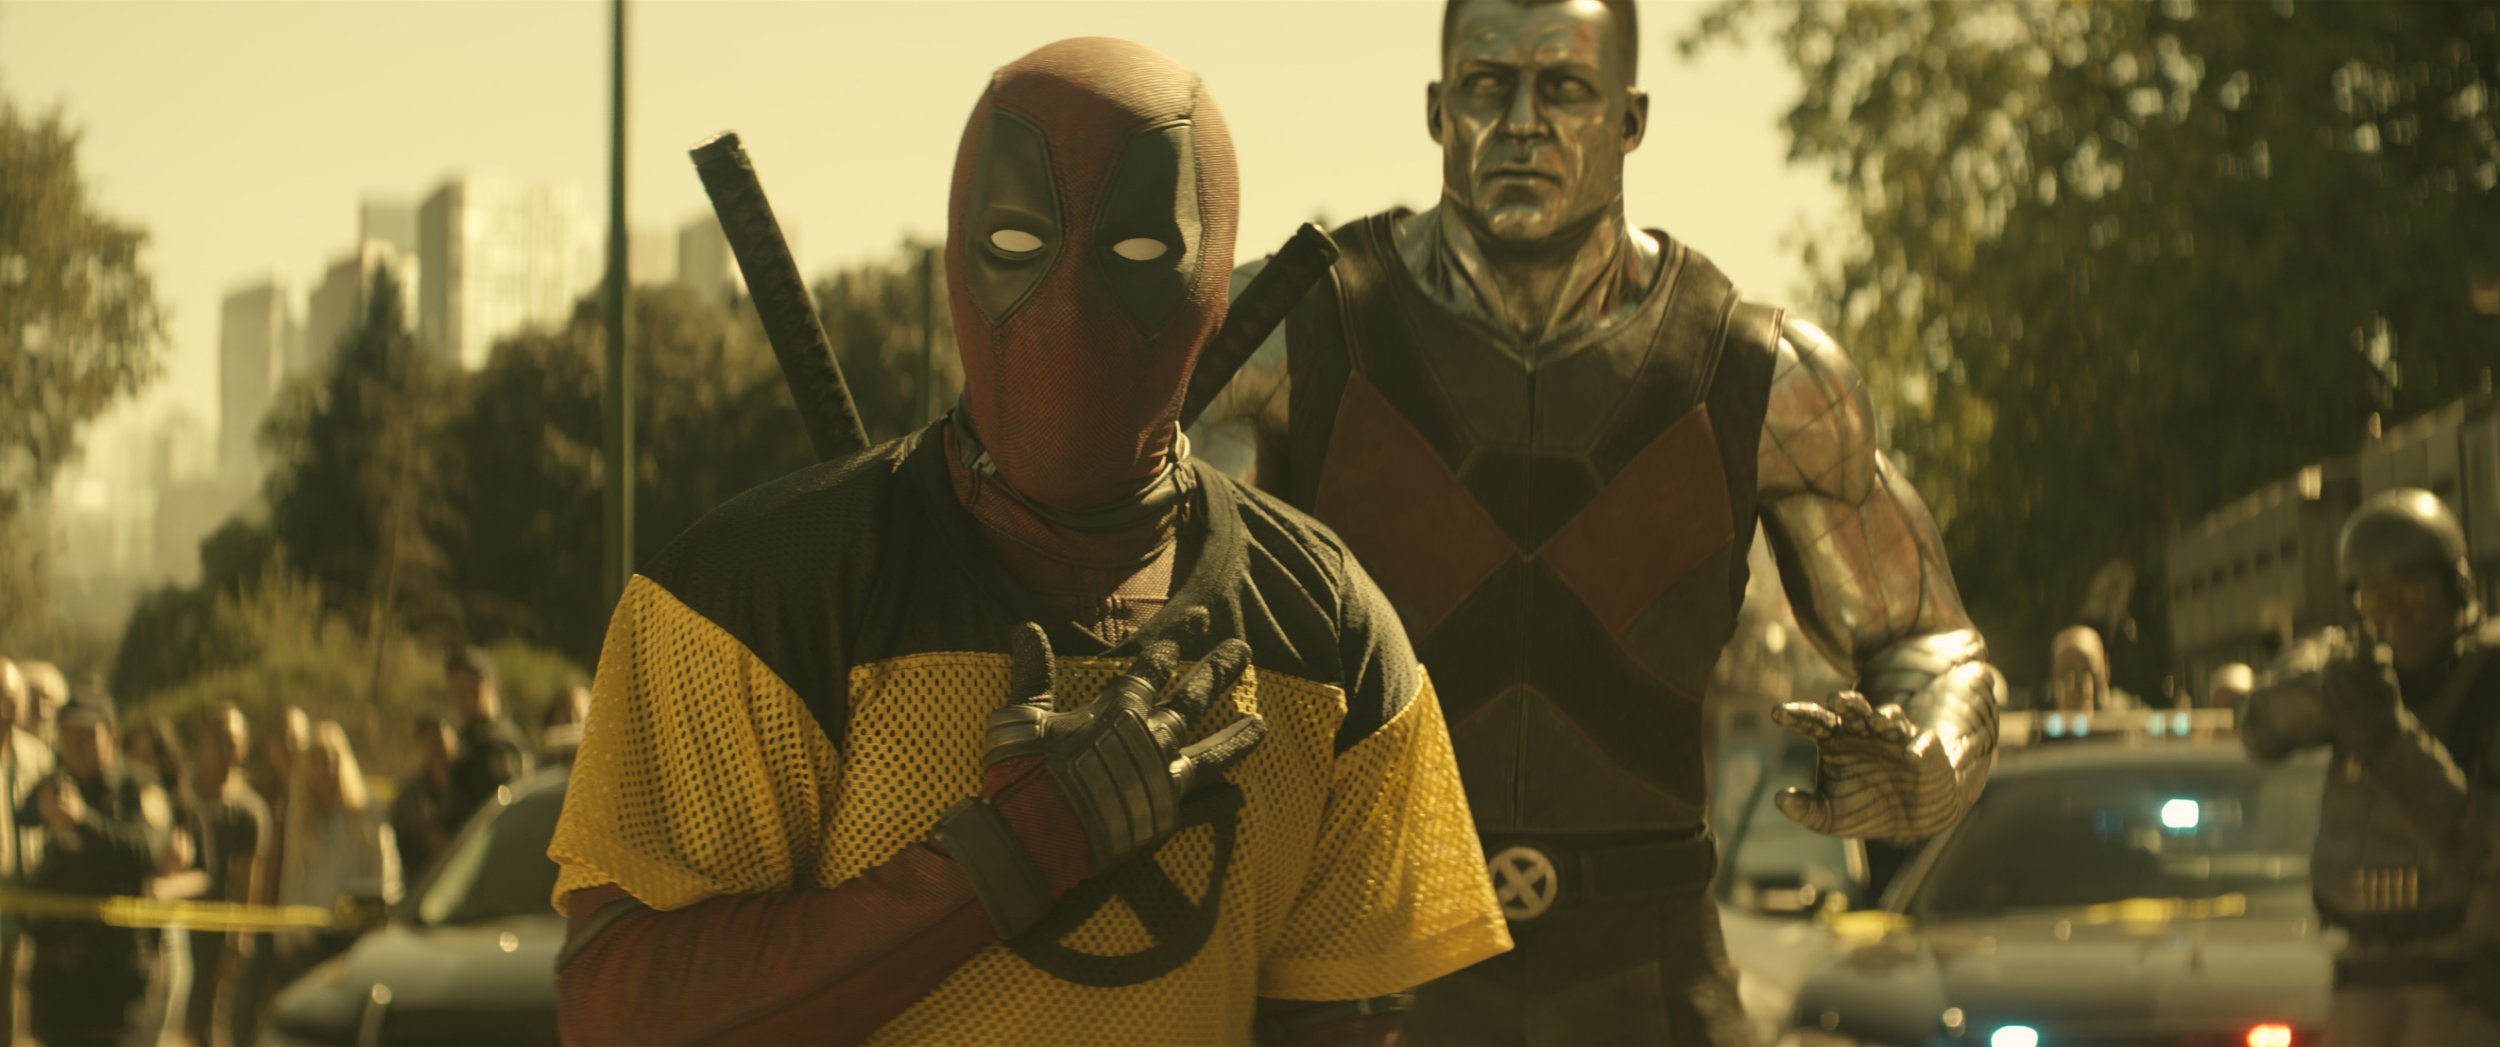 Deadpool 2 to be re-released as a PG-13 Christmas classic